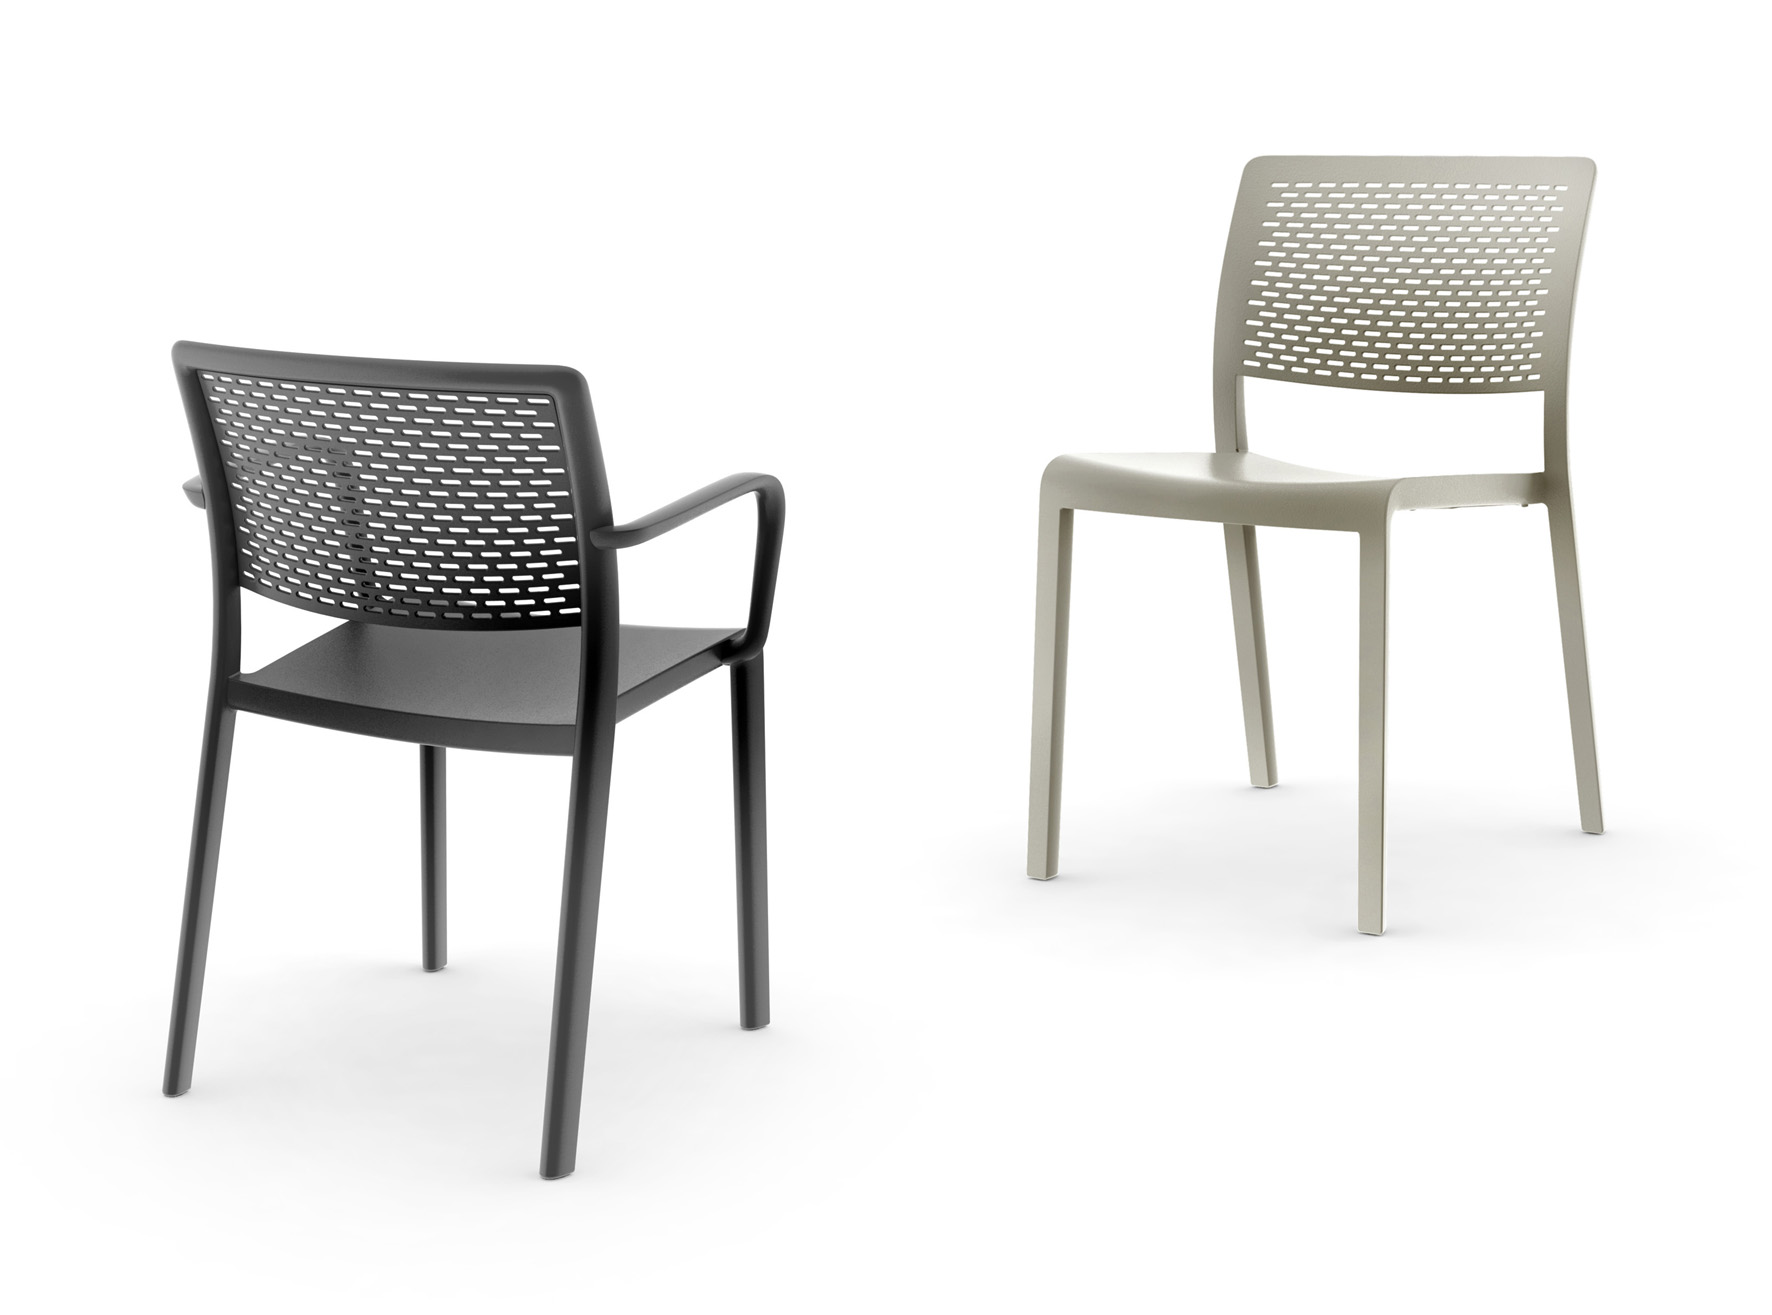 Sillas de terraza chill out for Sillas terraza diseno